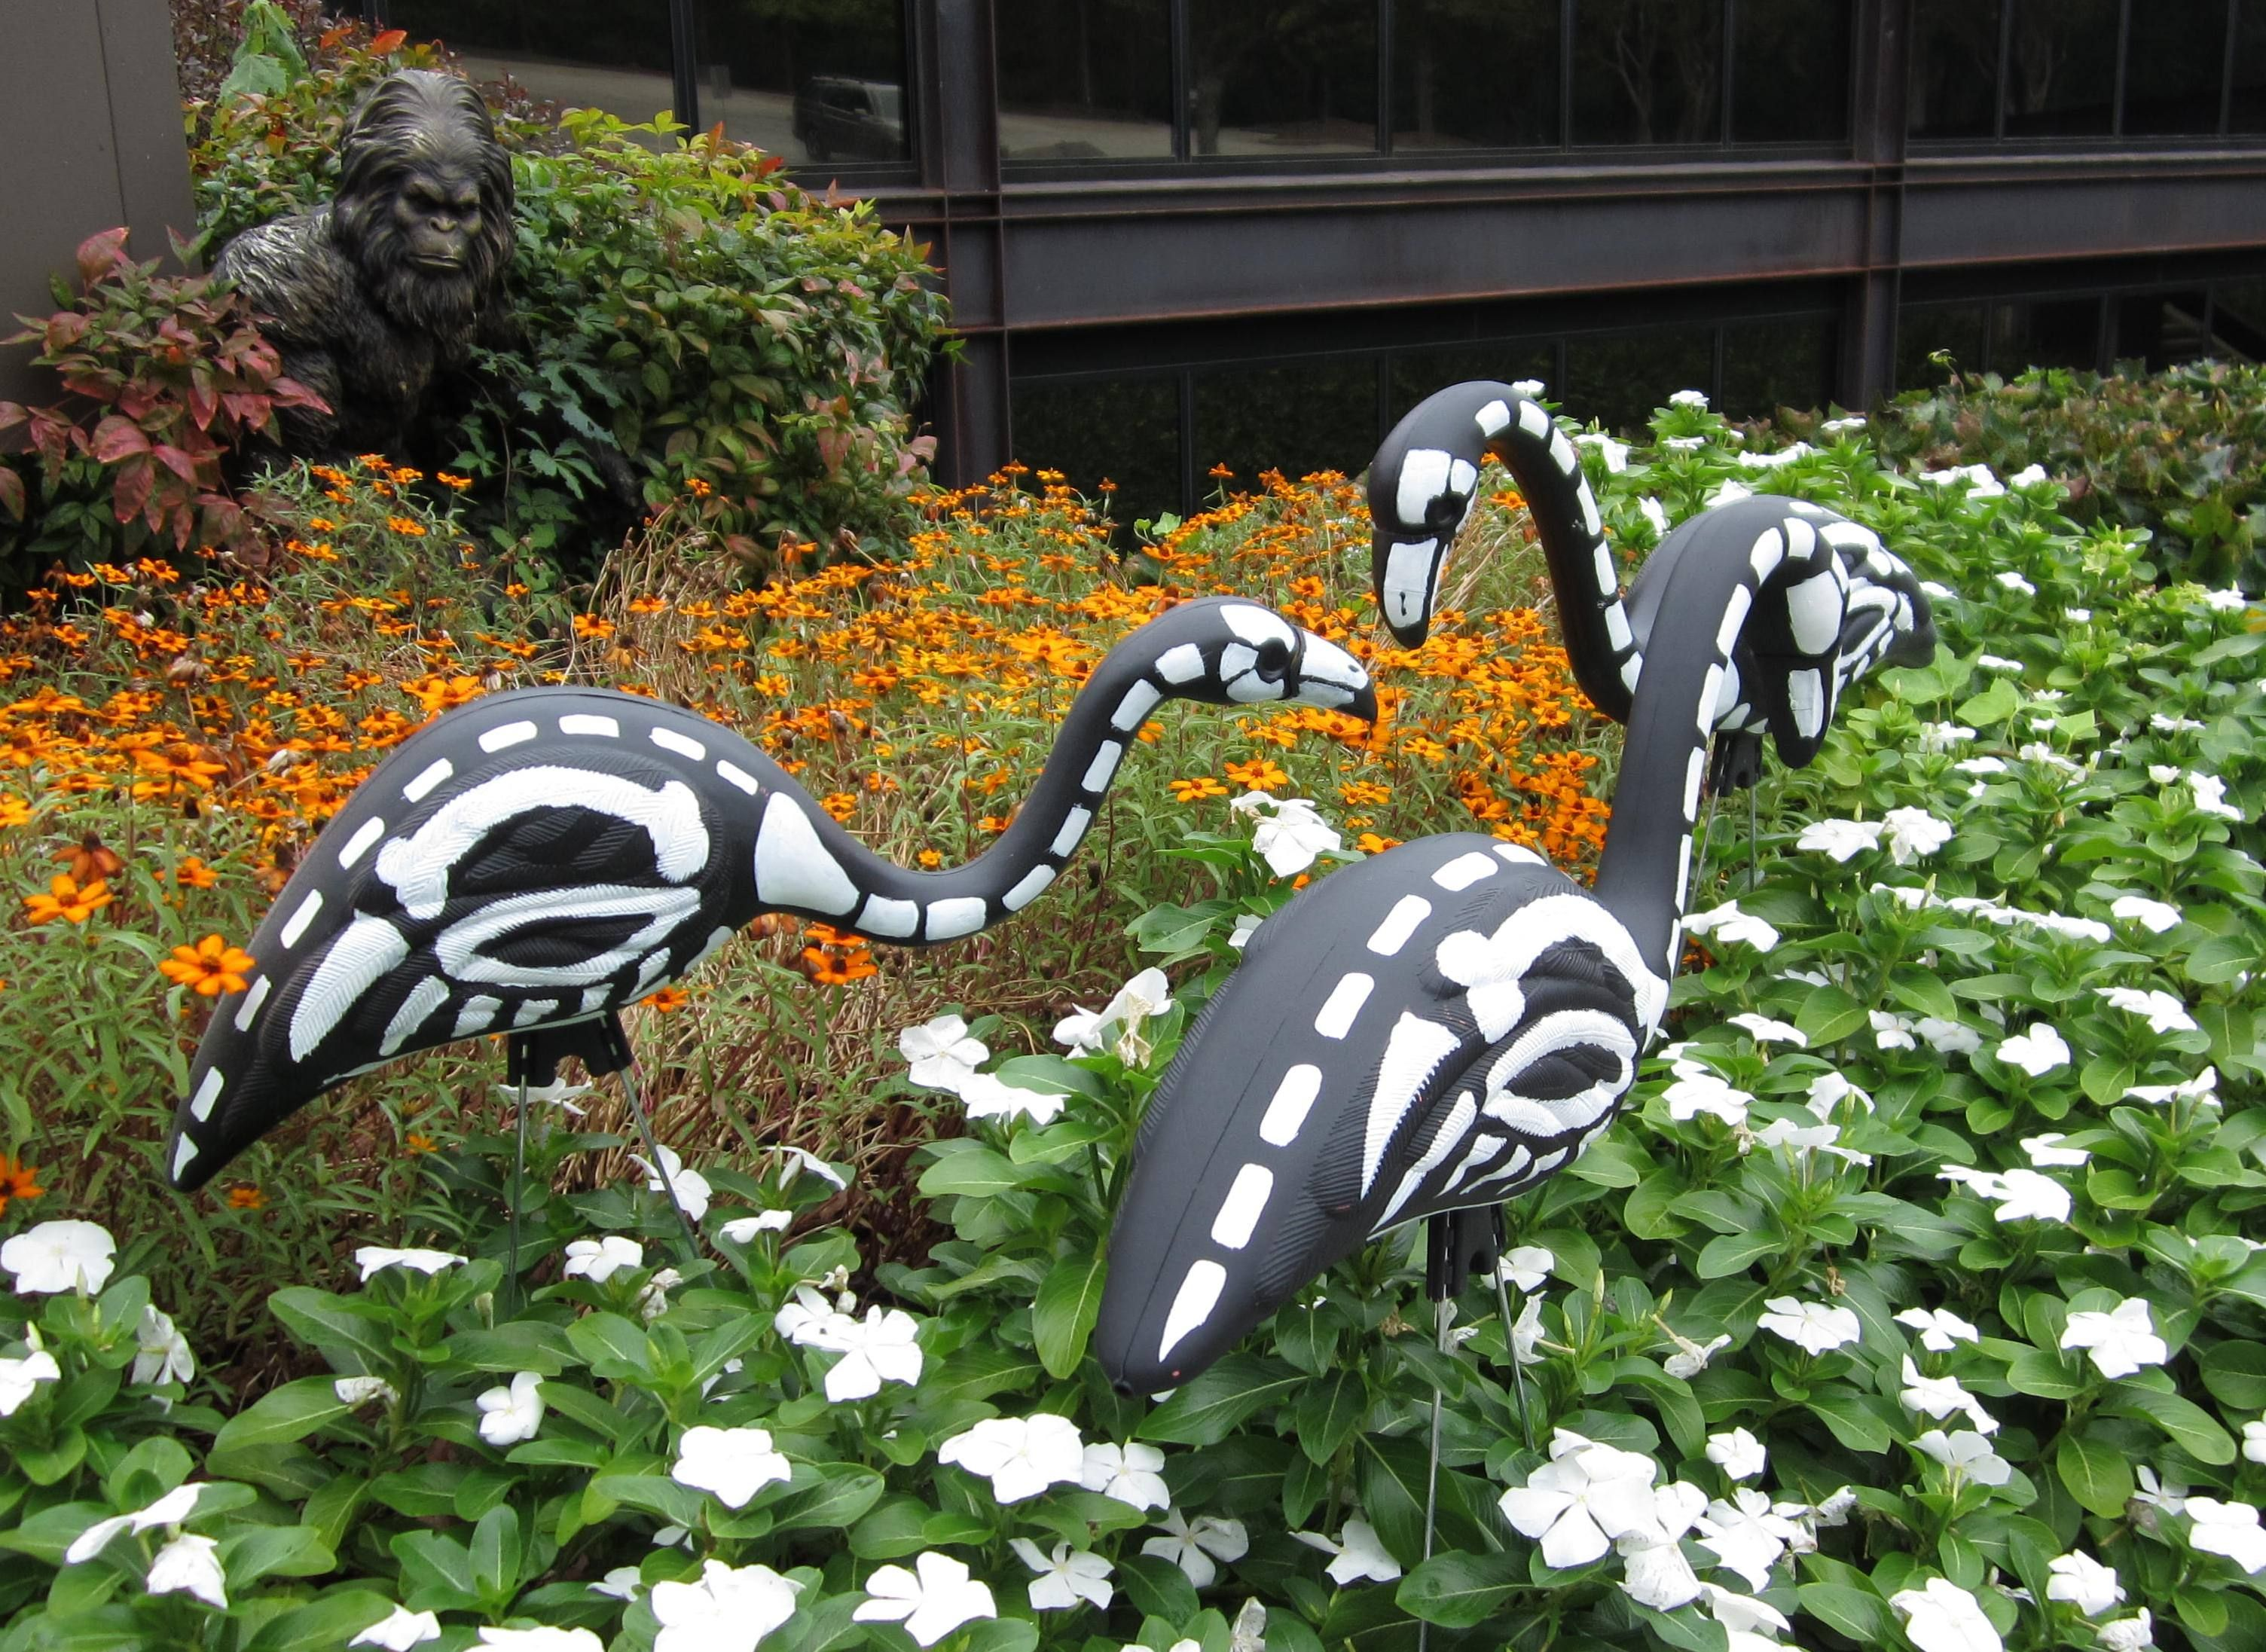 Skeleton Flamingos!   communityhomedepot/t5/Halloween